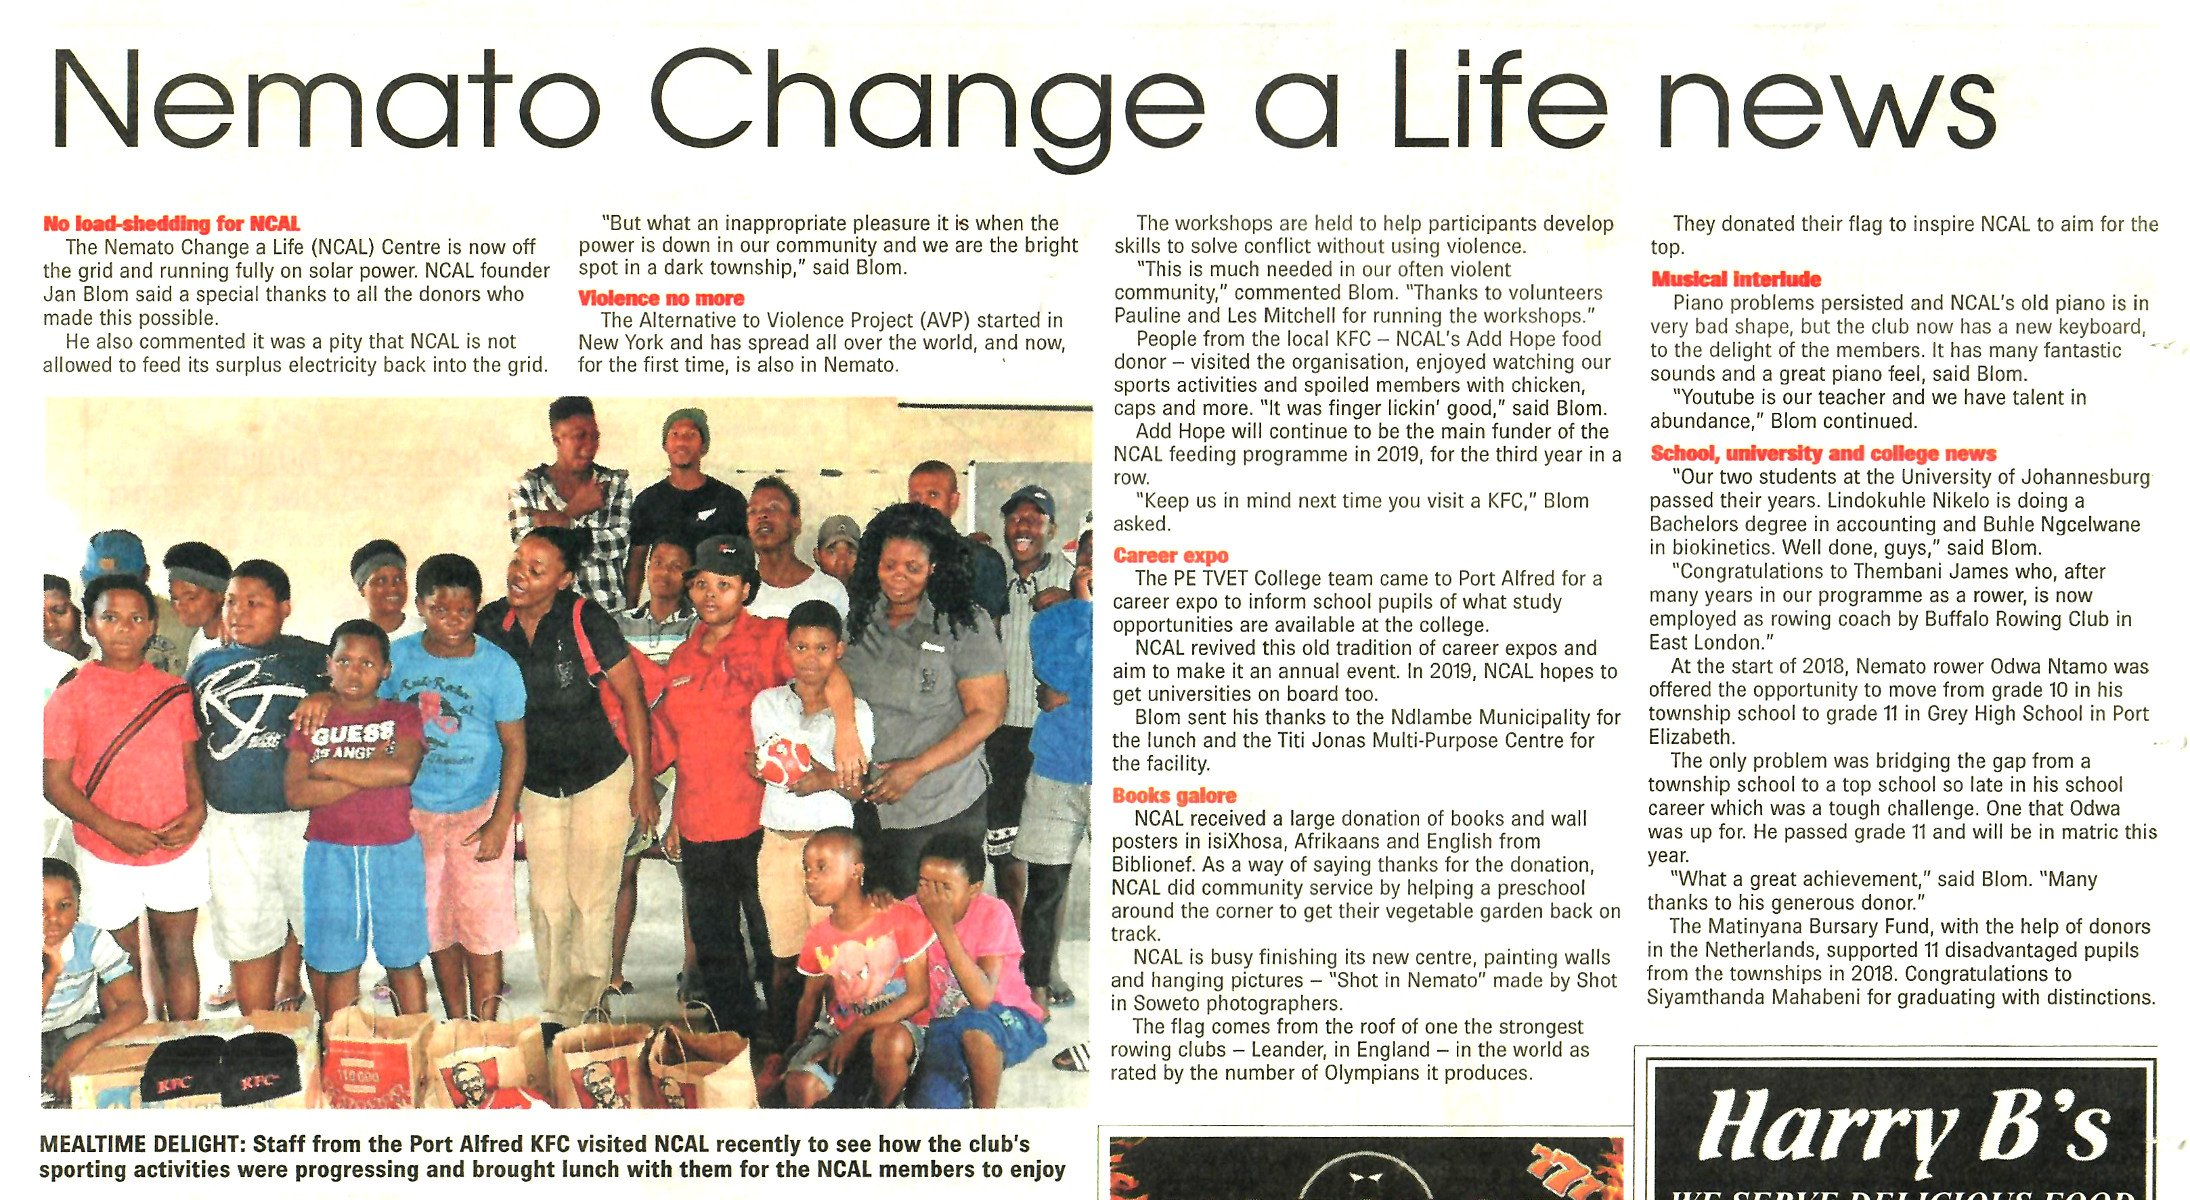 Nemato Change a Life / Matinyana Fund: empowerment for youth